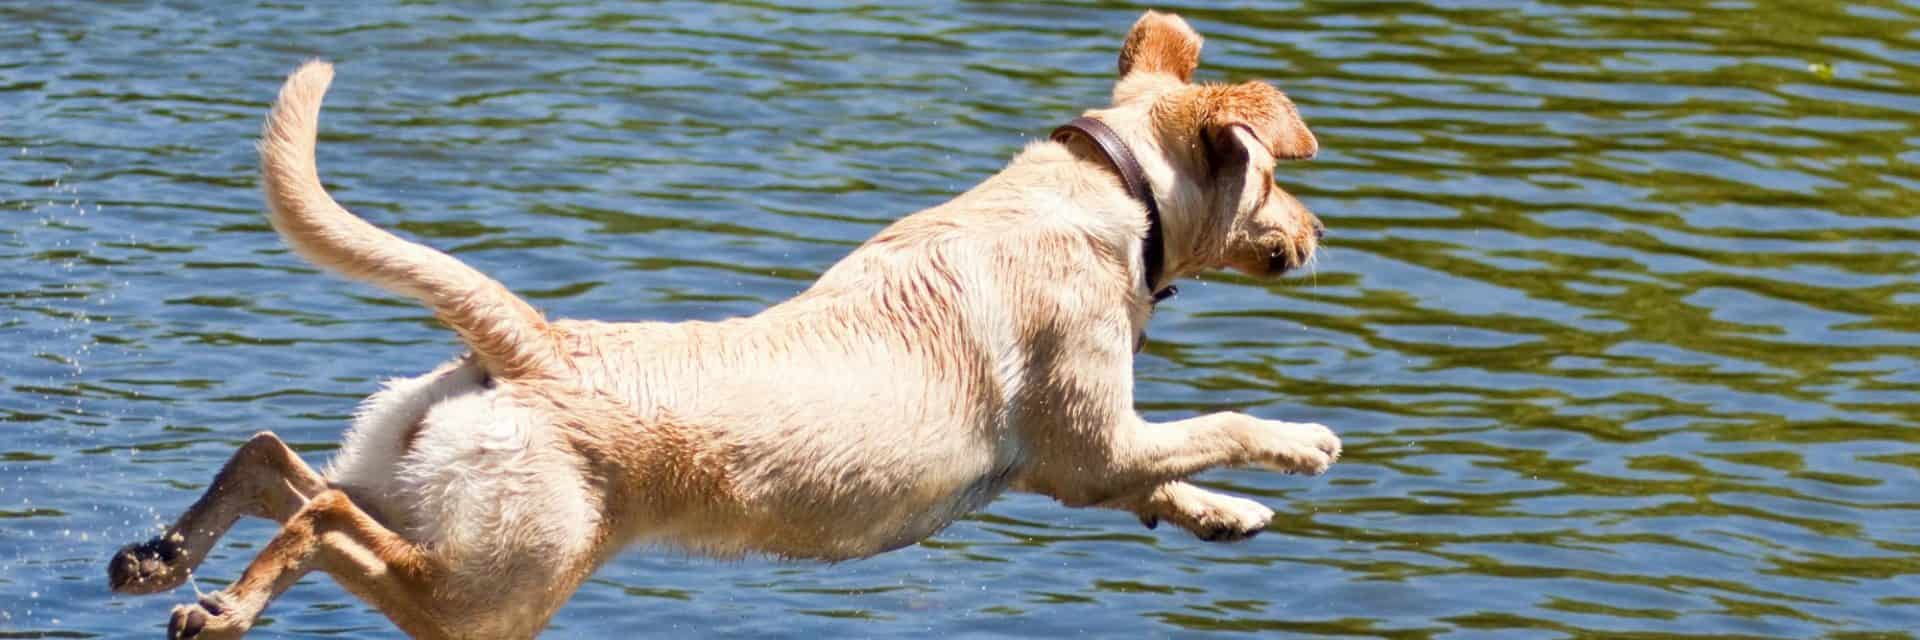 Dog Jumping into Lake